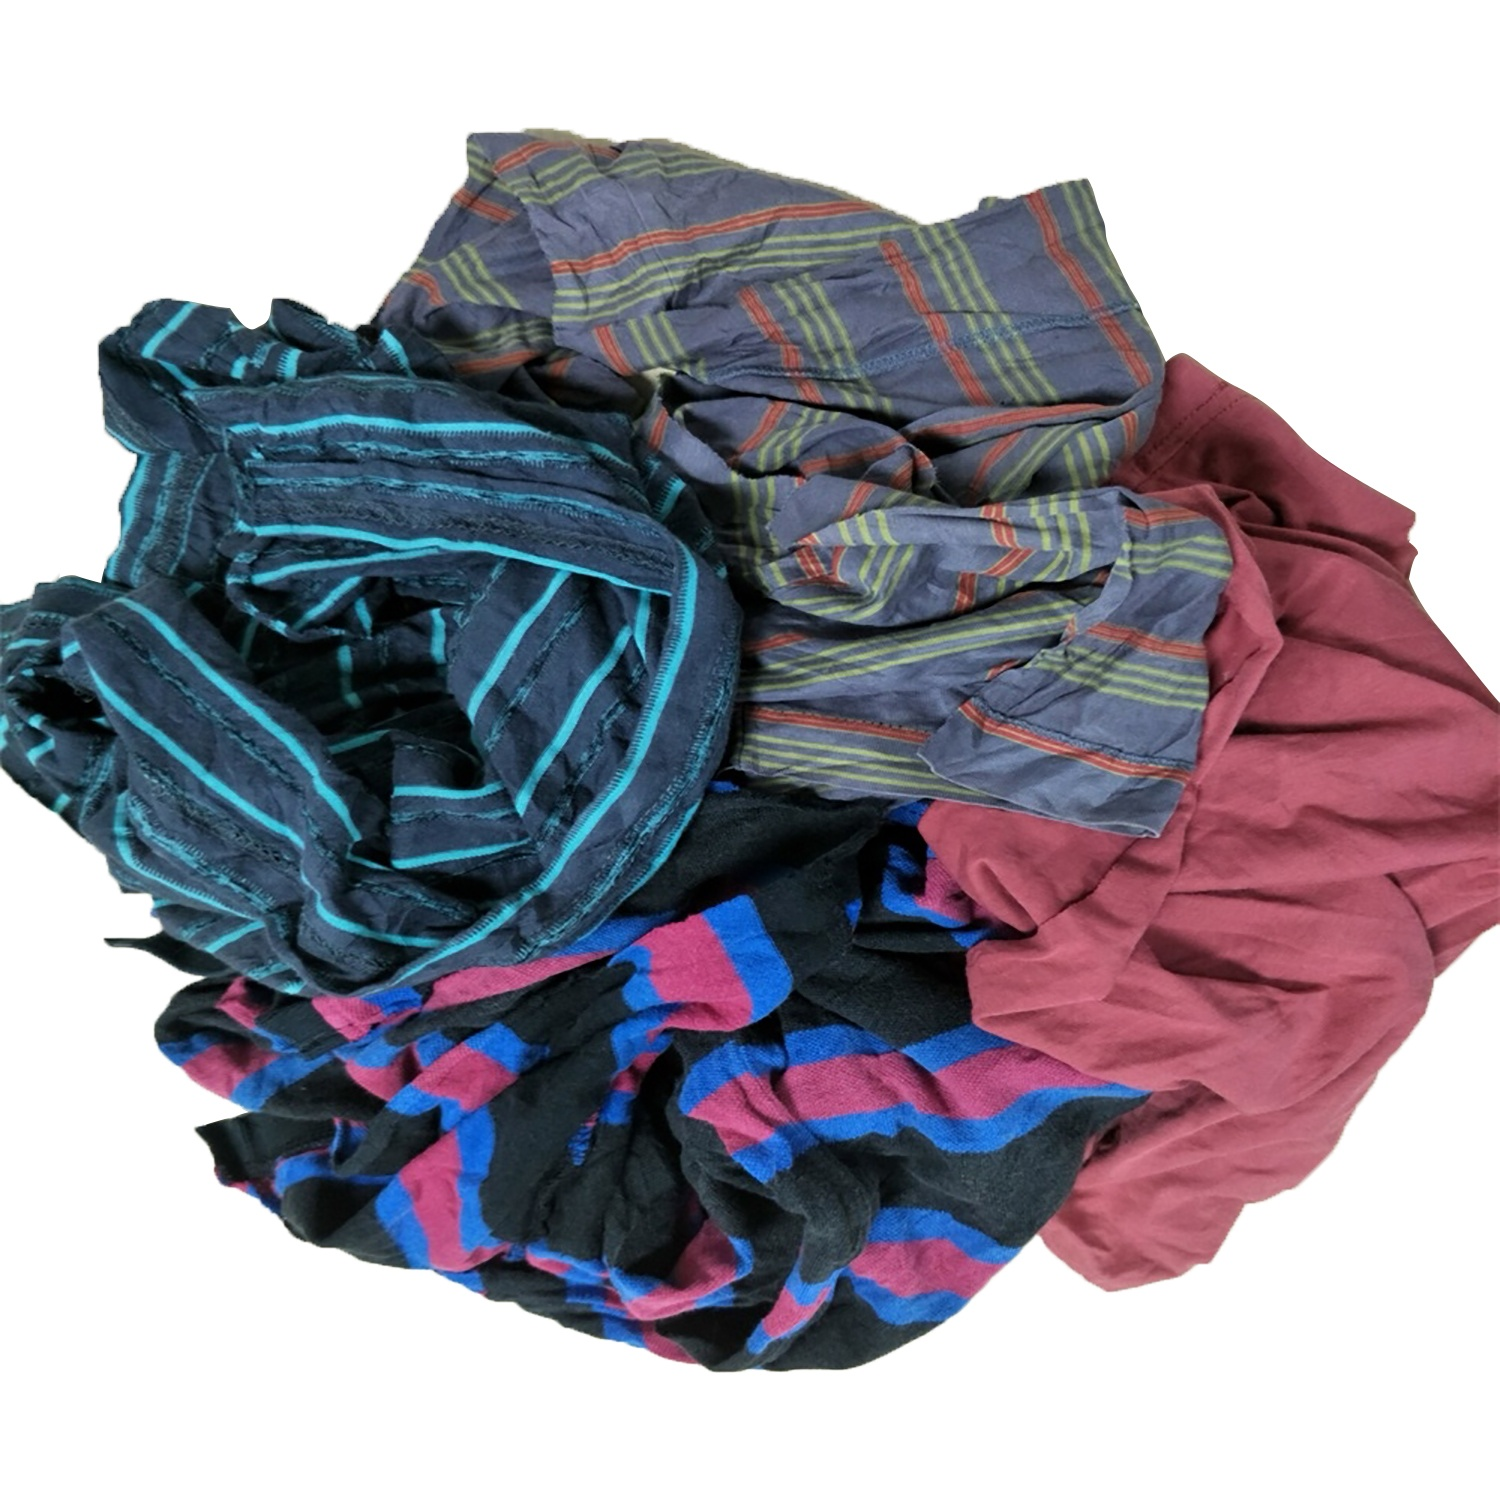 10kg bale of textile waste cotton rags for oil absorbent cloth